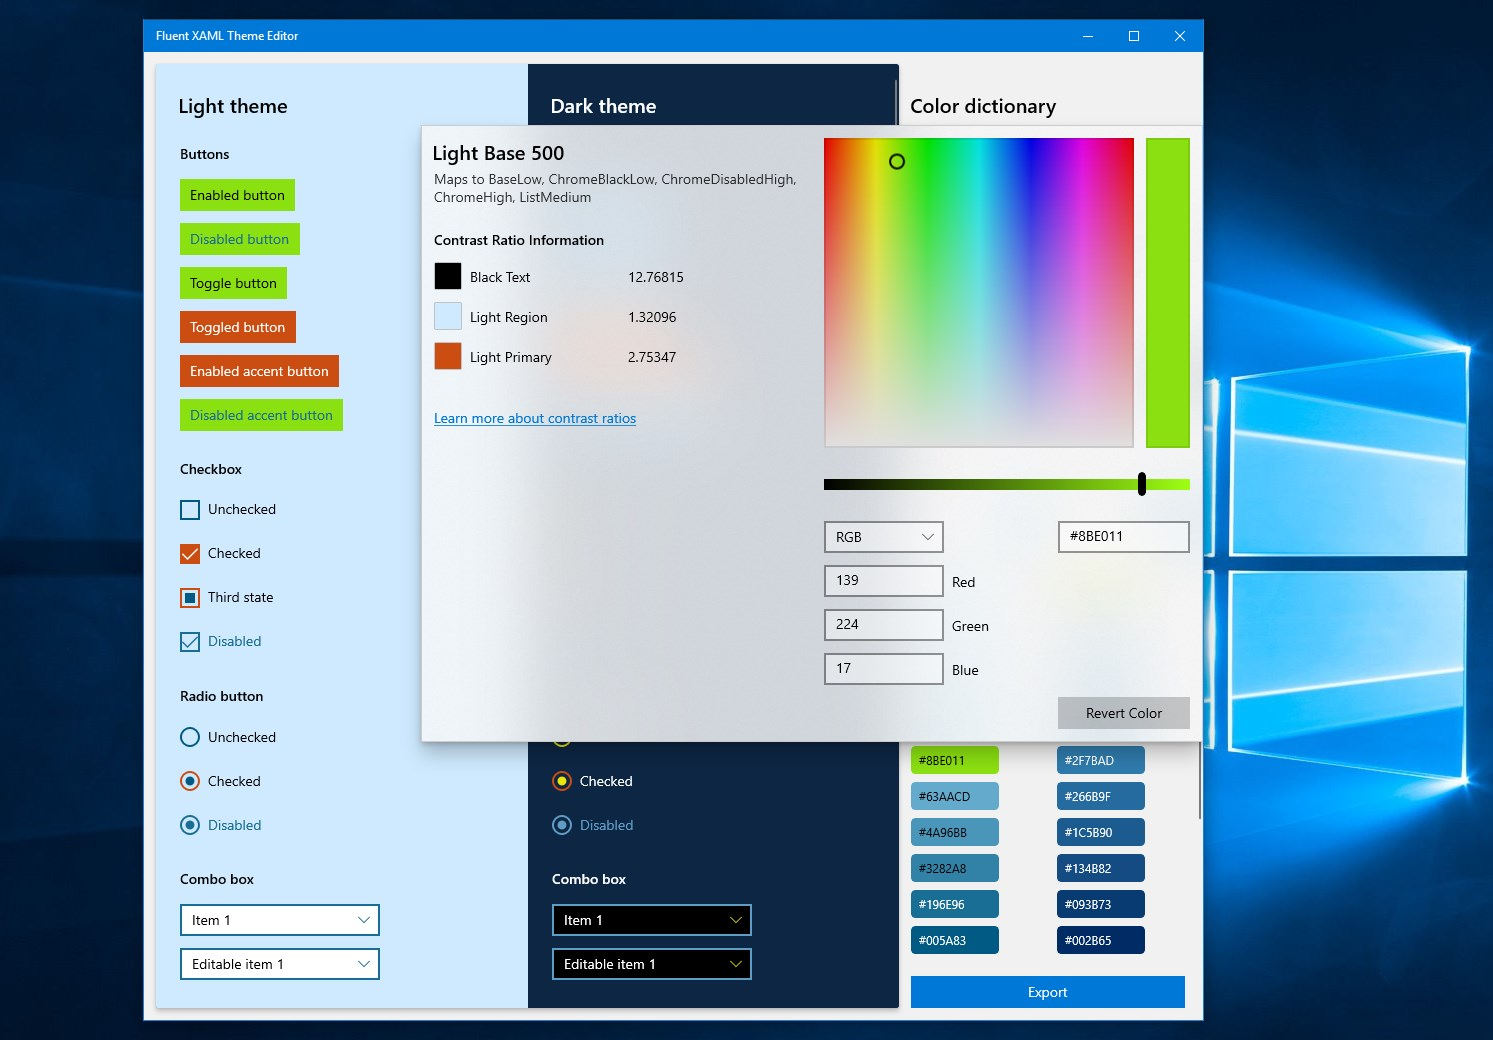 Developers: Microsoft has released Fluent XAML Theme Editor to the Microsoft Store